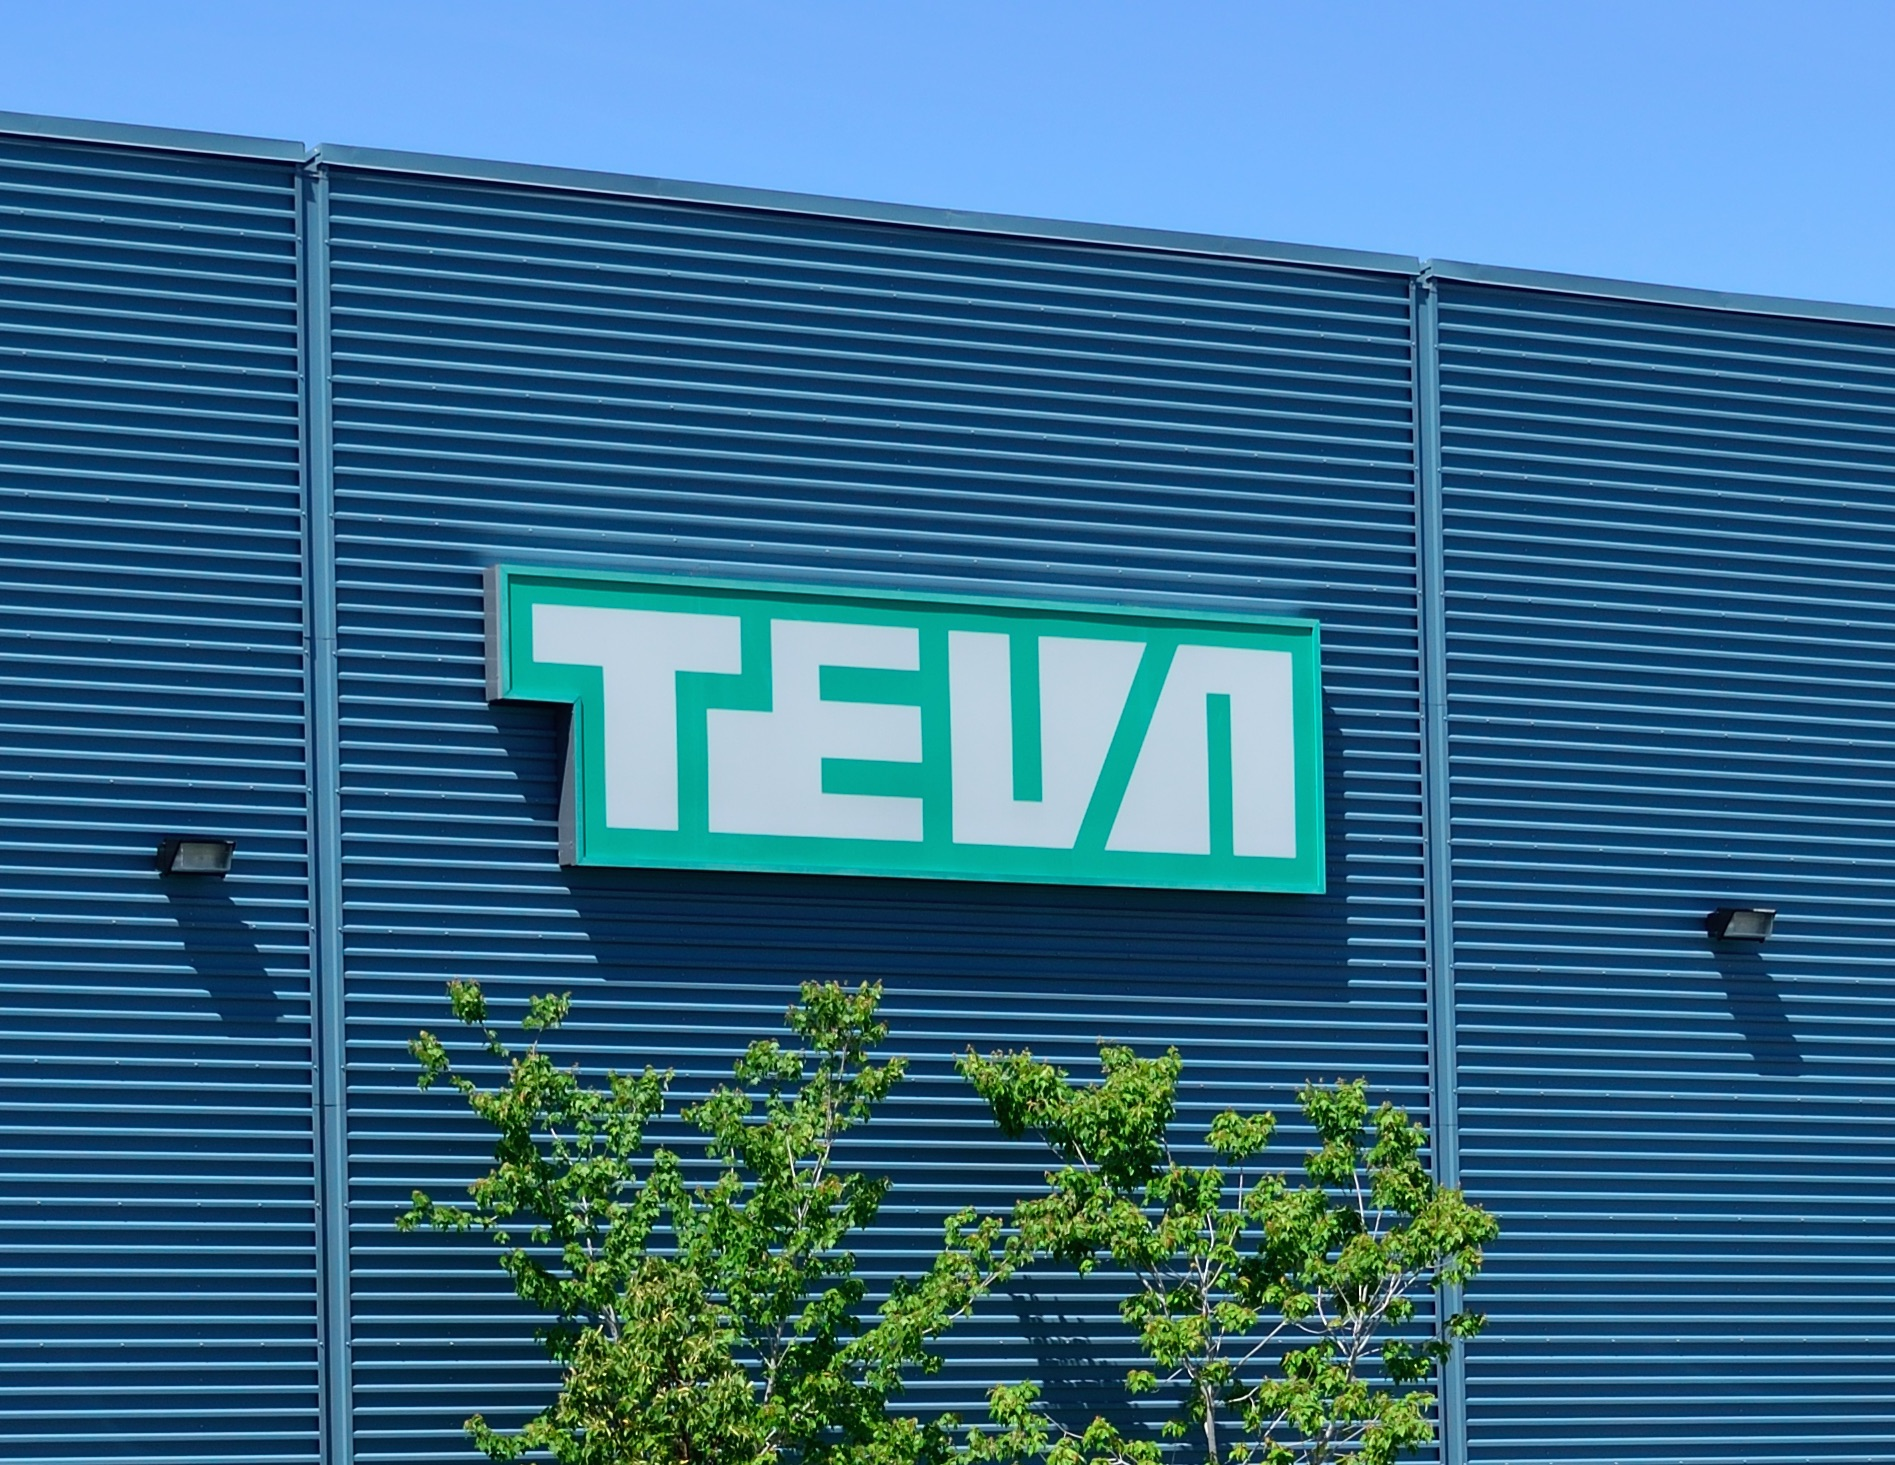 «Тева фармасьютикал индастриз» (Teva Pharmaceutical Industries).